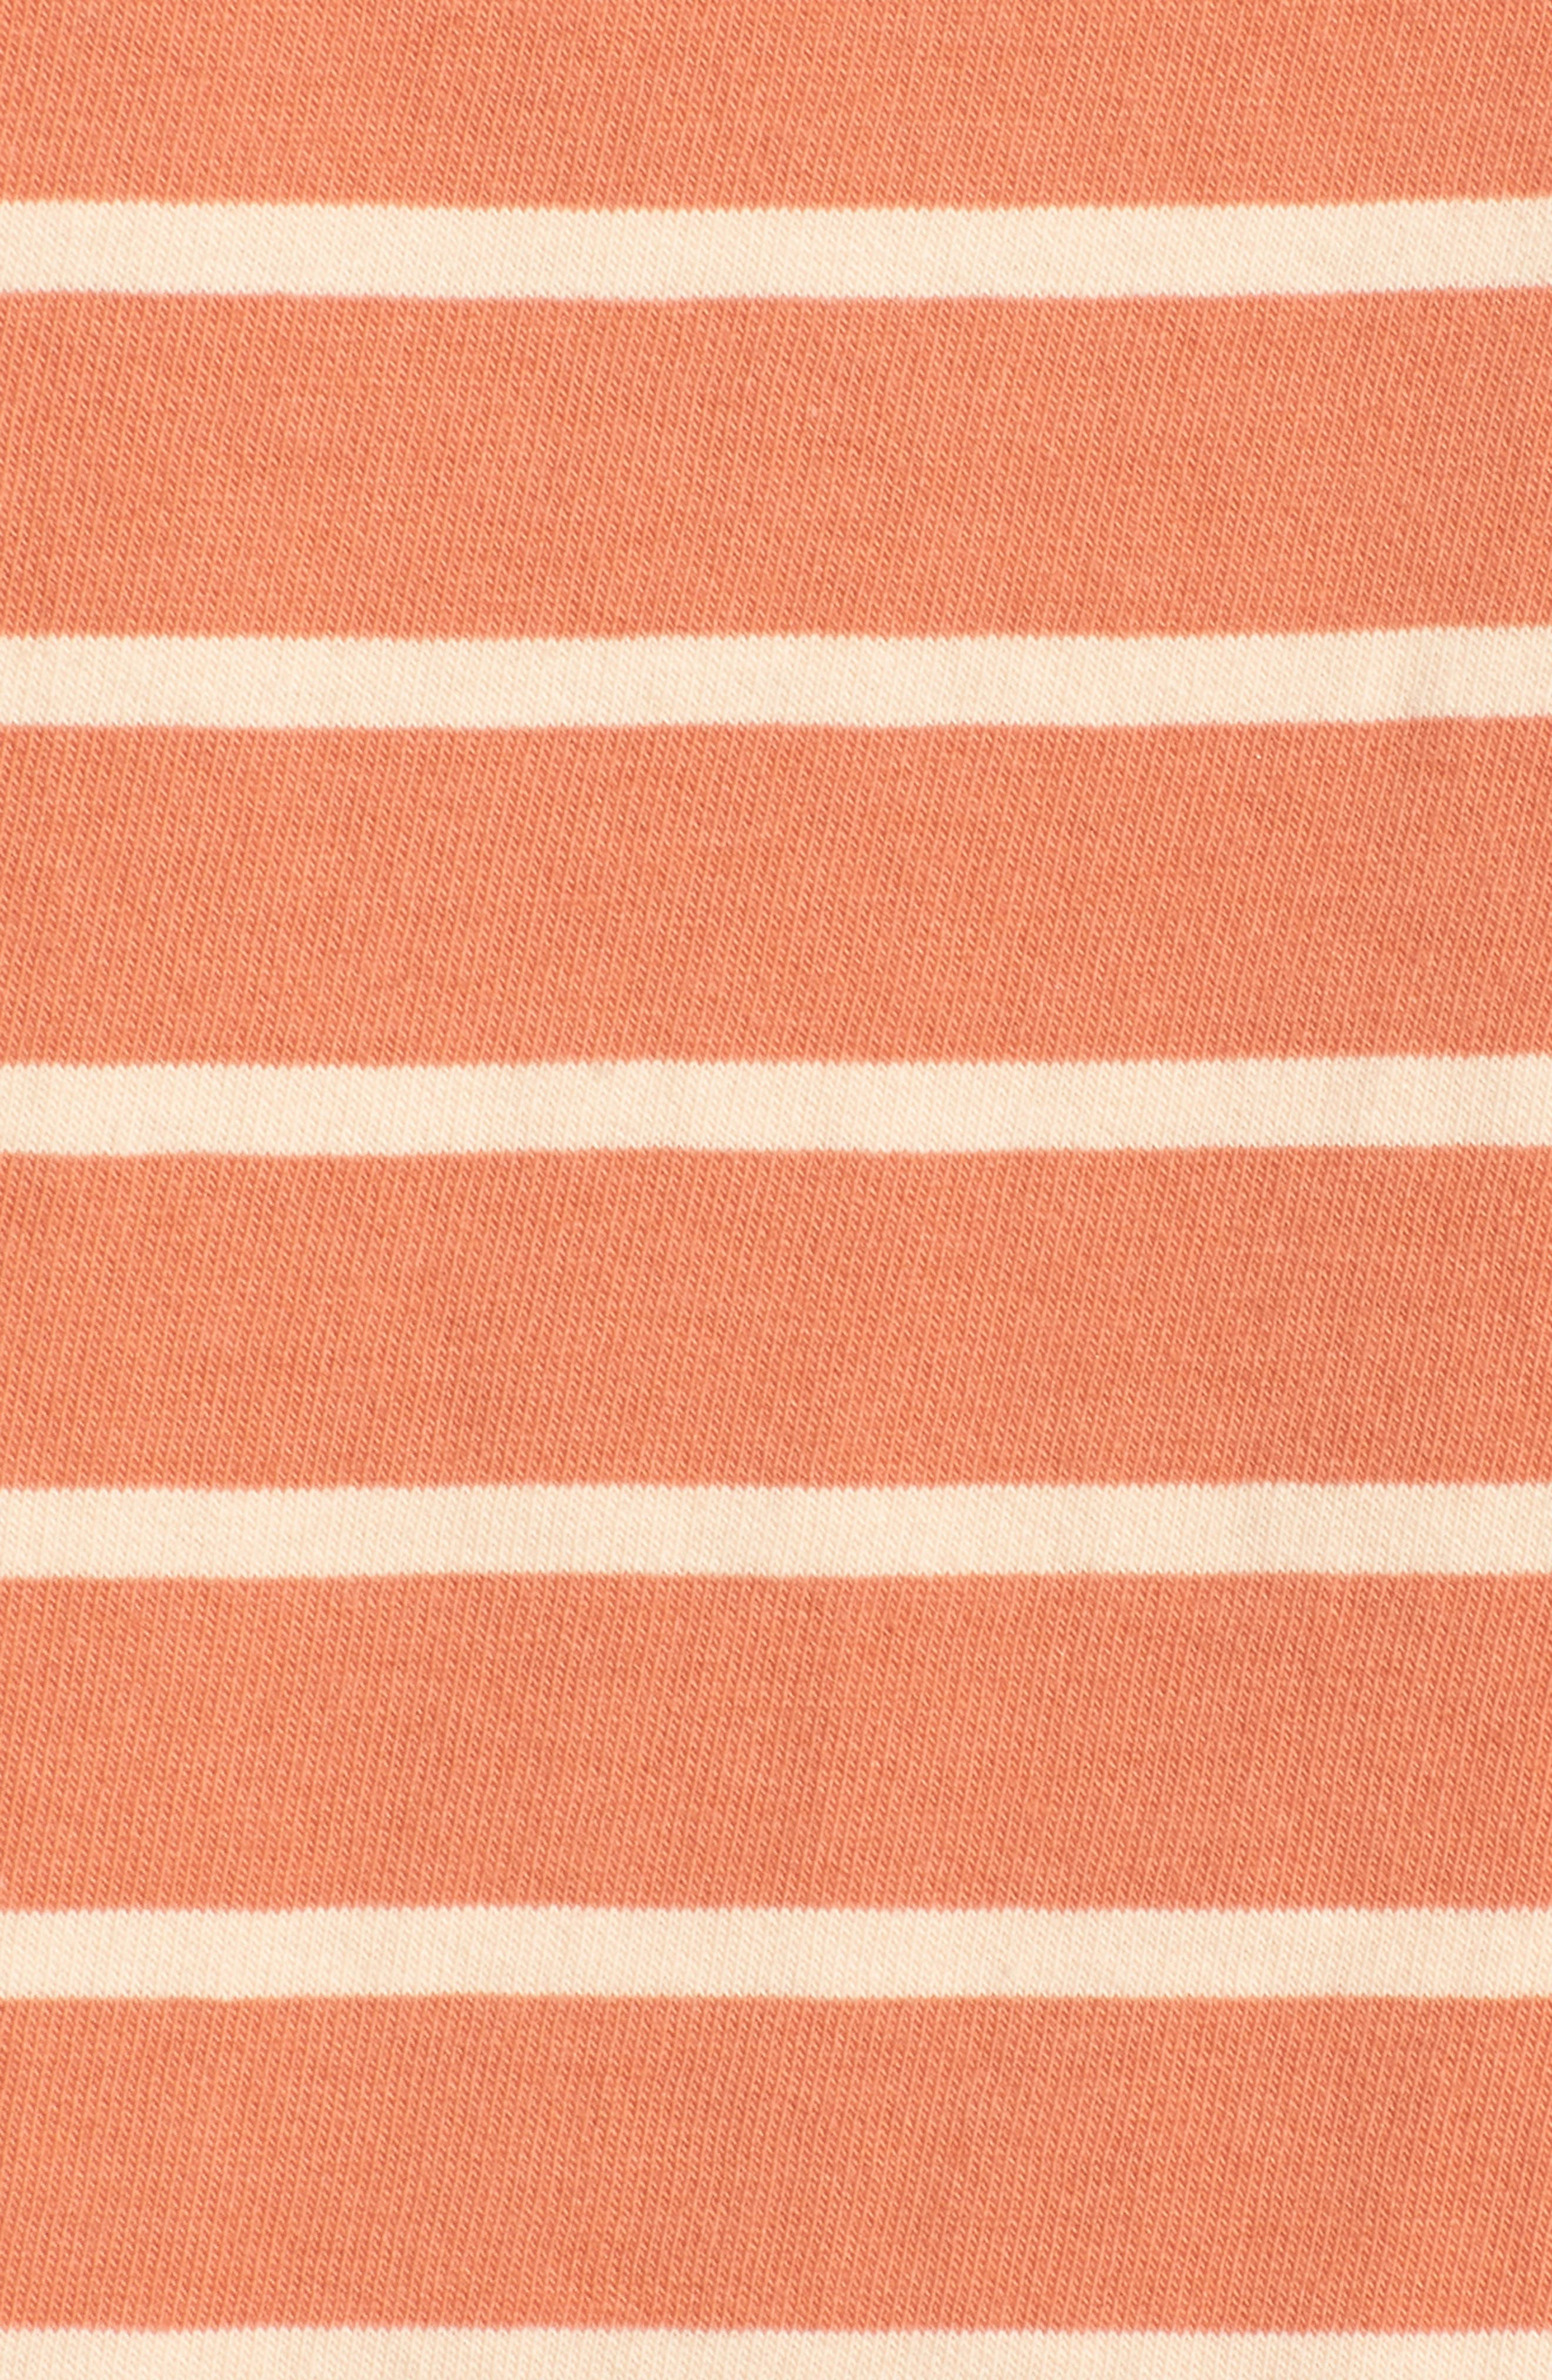 Stripe Boat Neck Top,                             Alternate thumbnail 6, color,                             Dried Coral